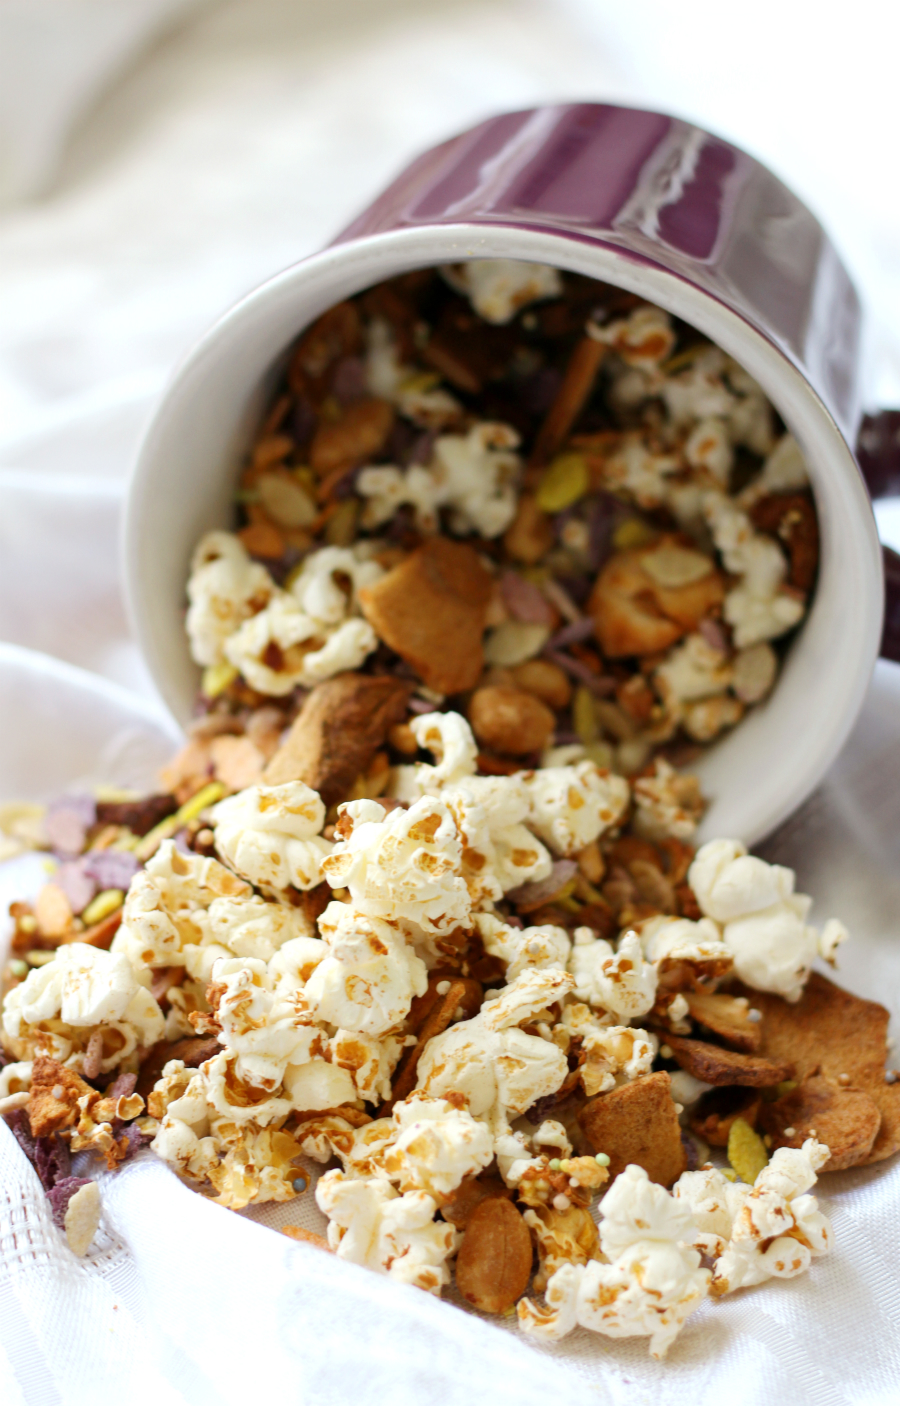 popcorn with nuts and ceral